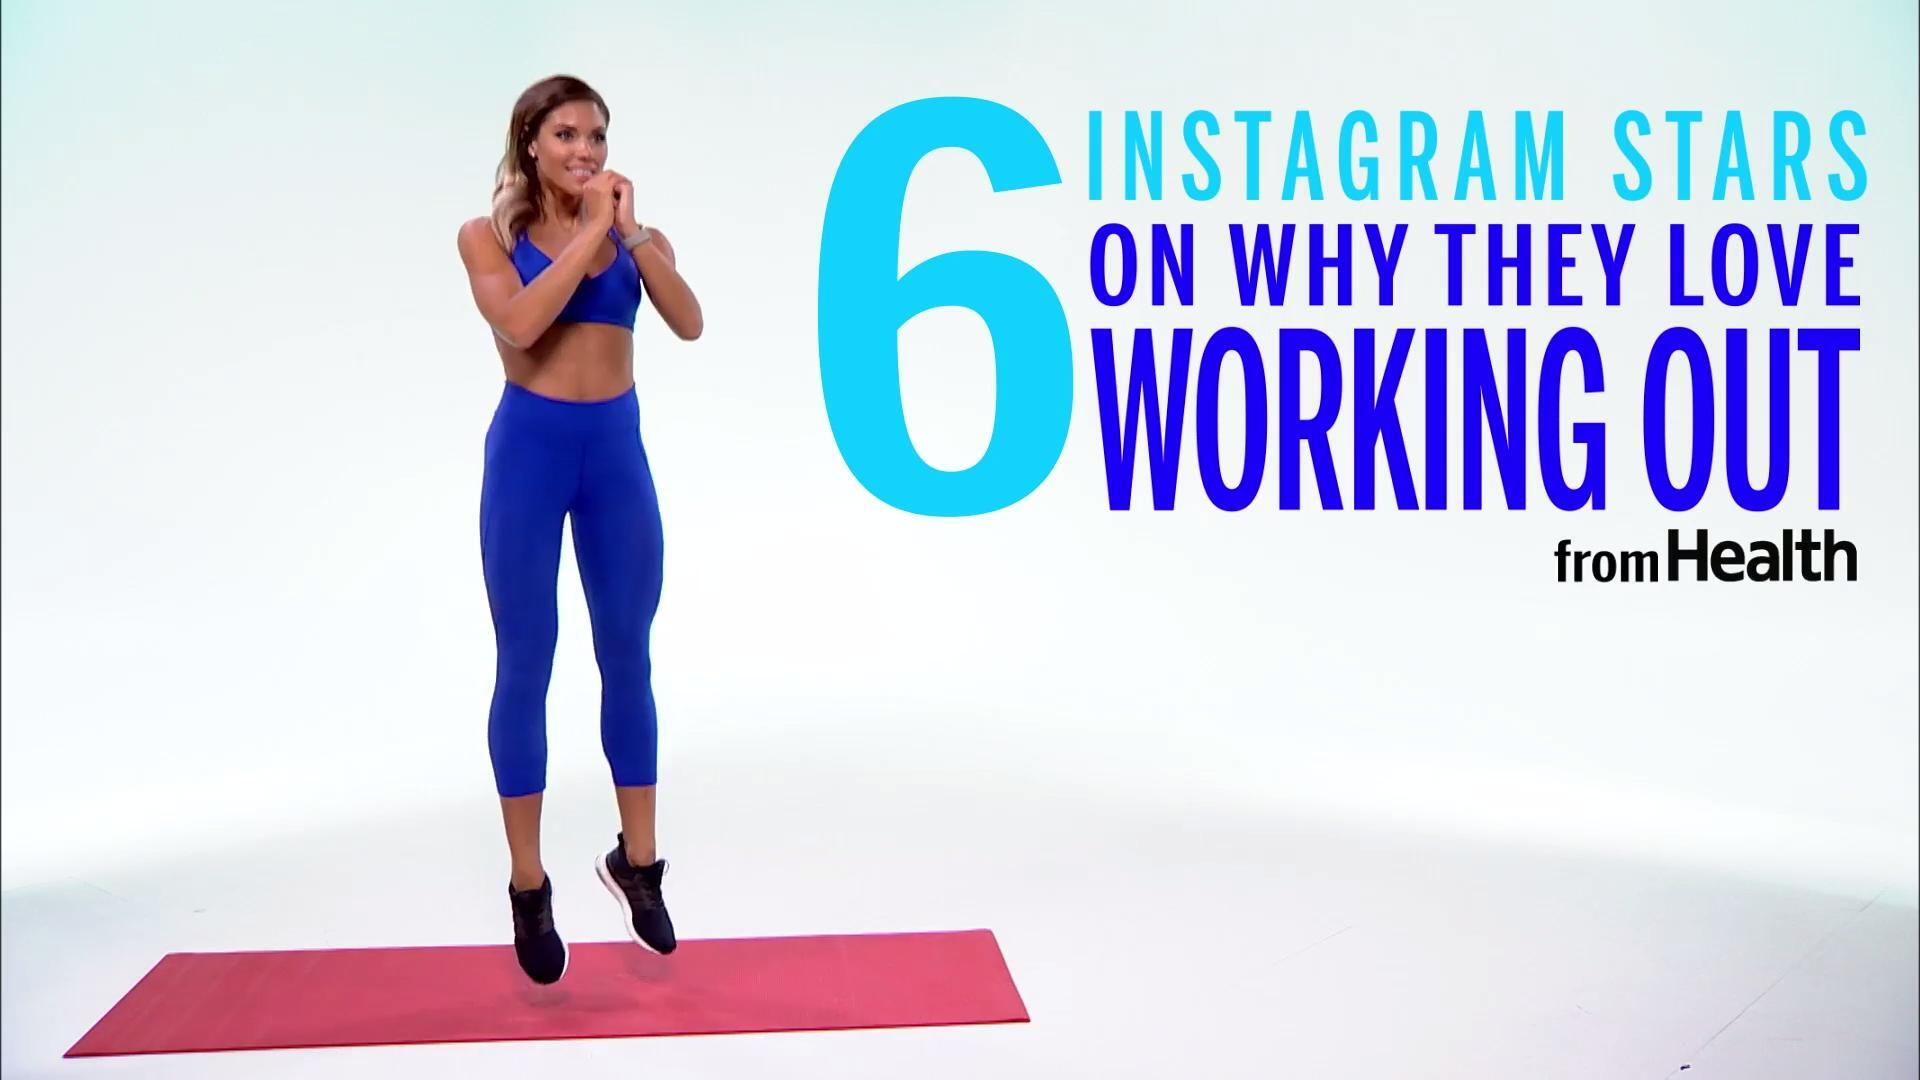 Why they love working out...